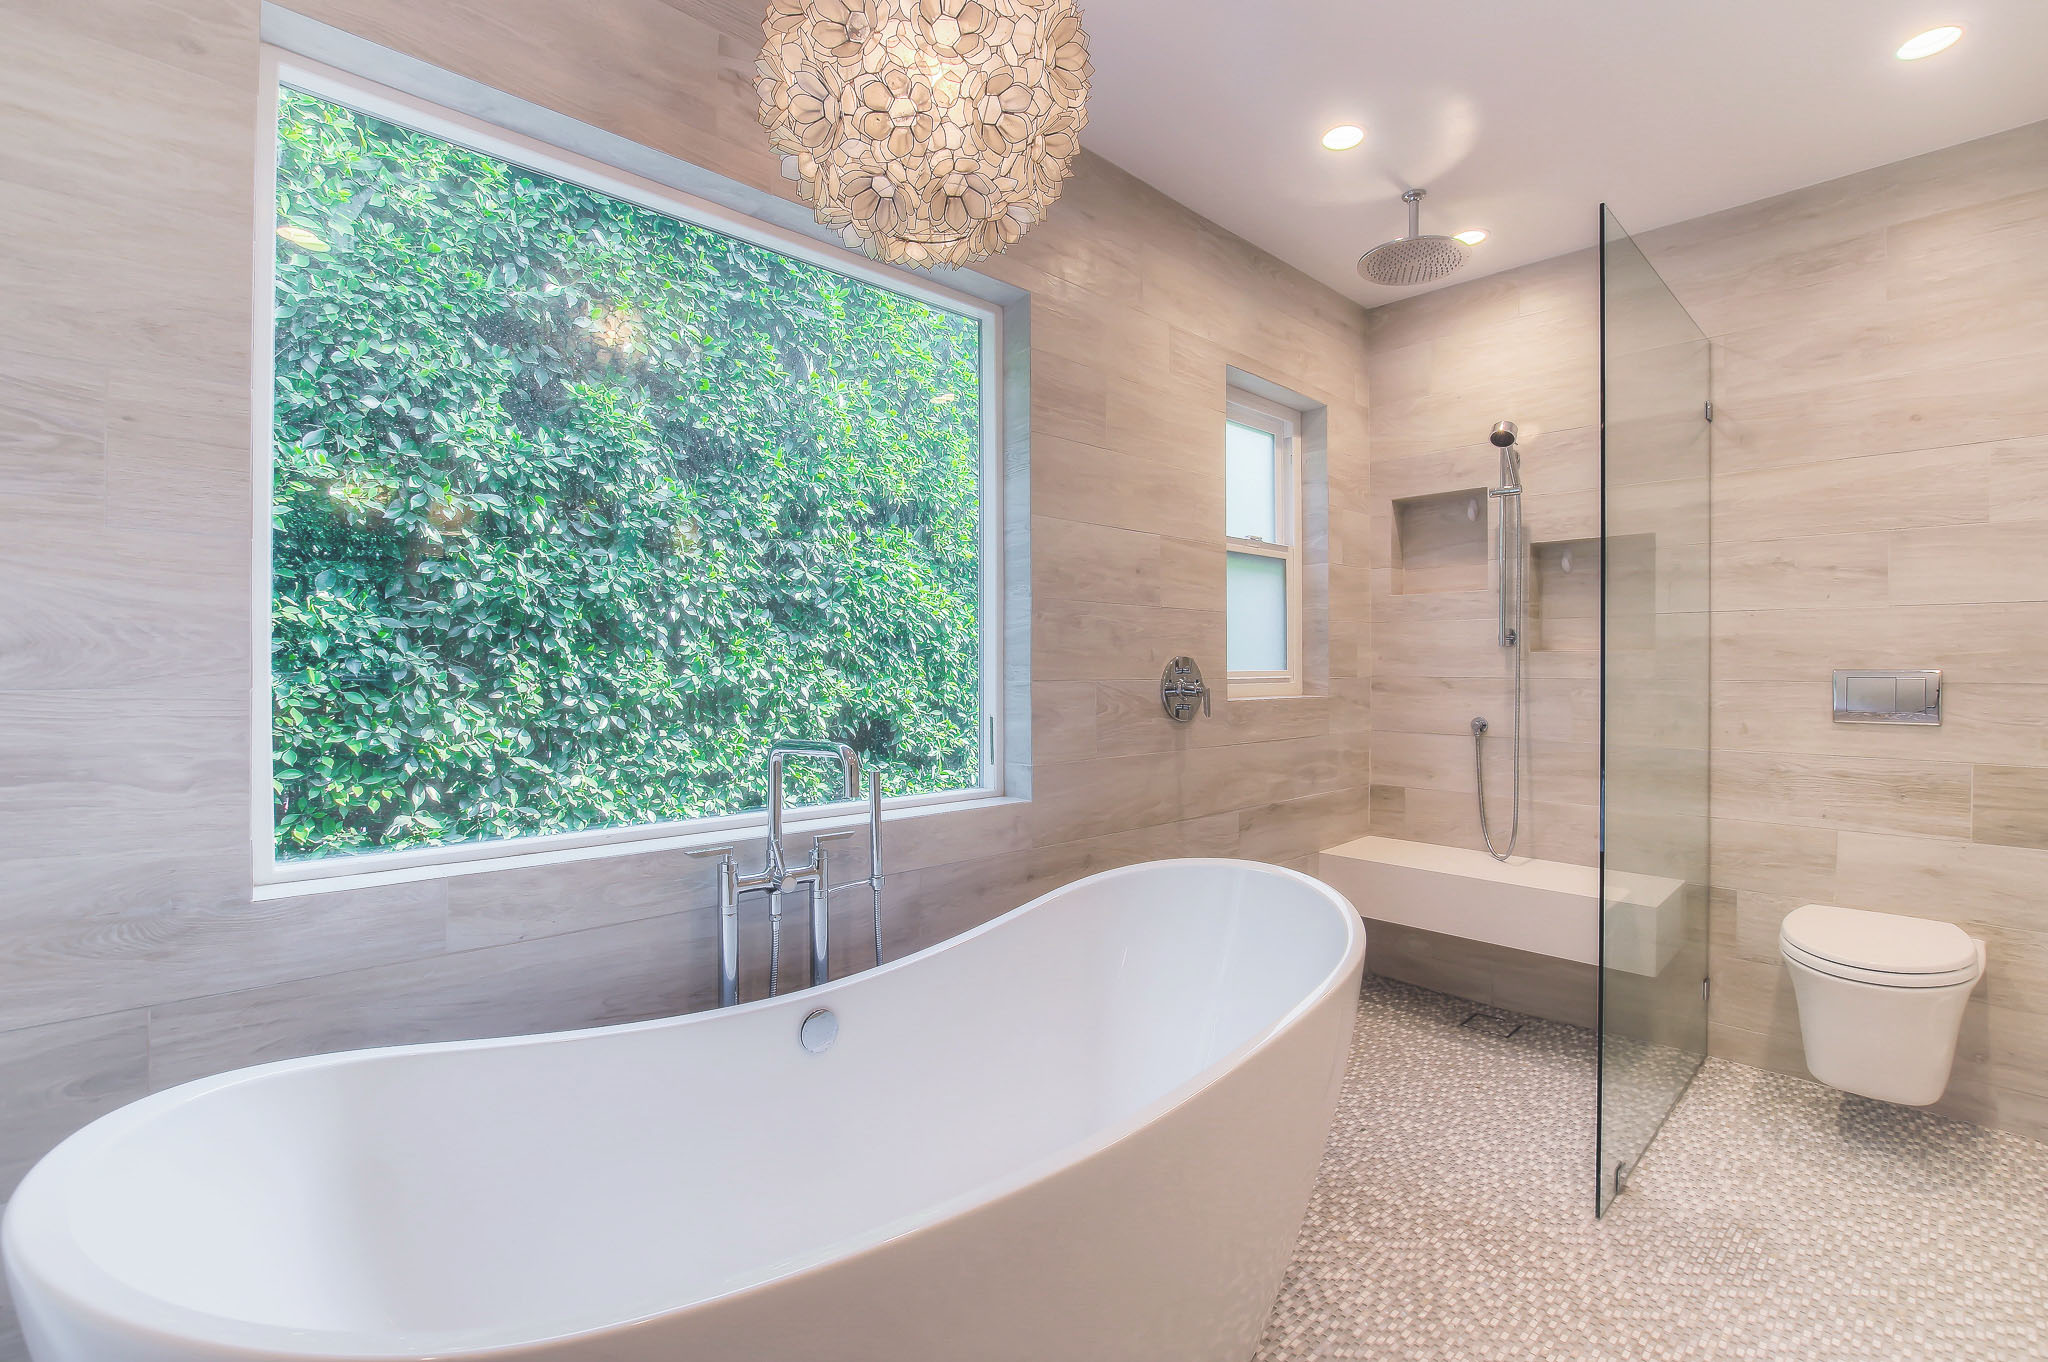 WEST LA BATHROOM REMODEL | SPAZIO LA